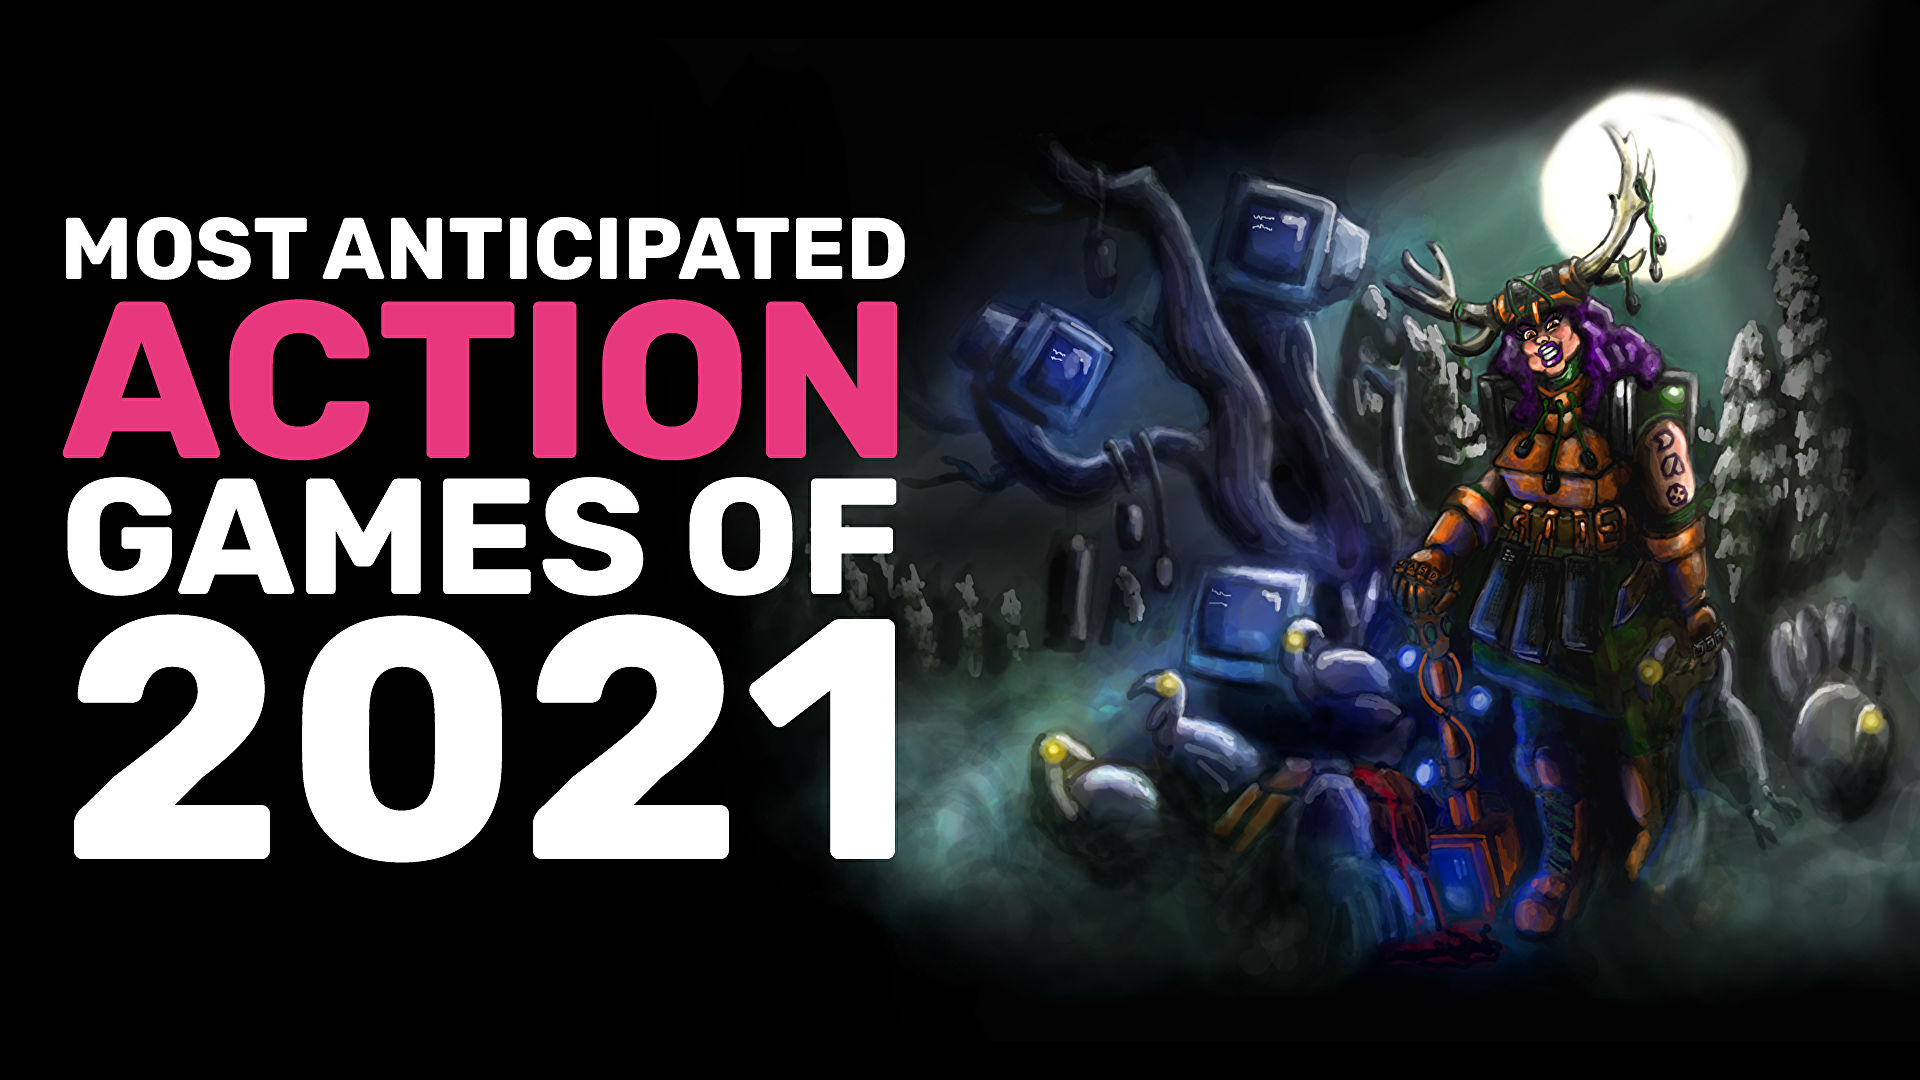 Our most anticipated action games of 2021